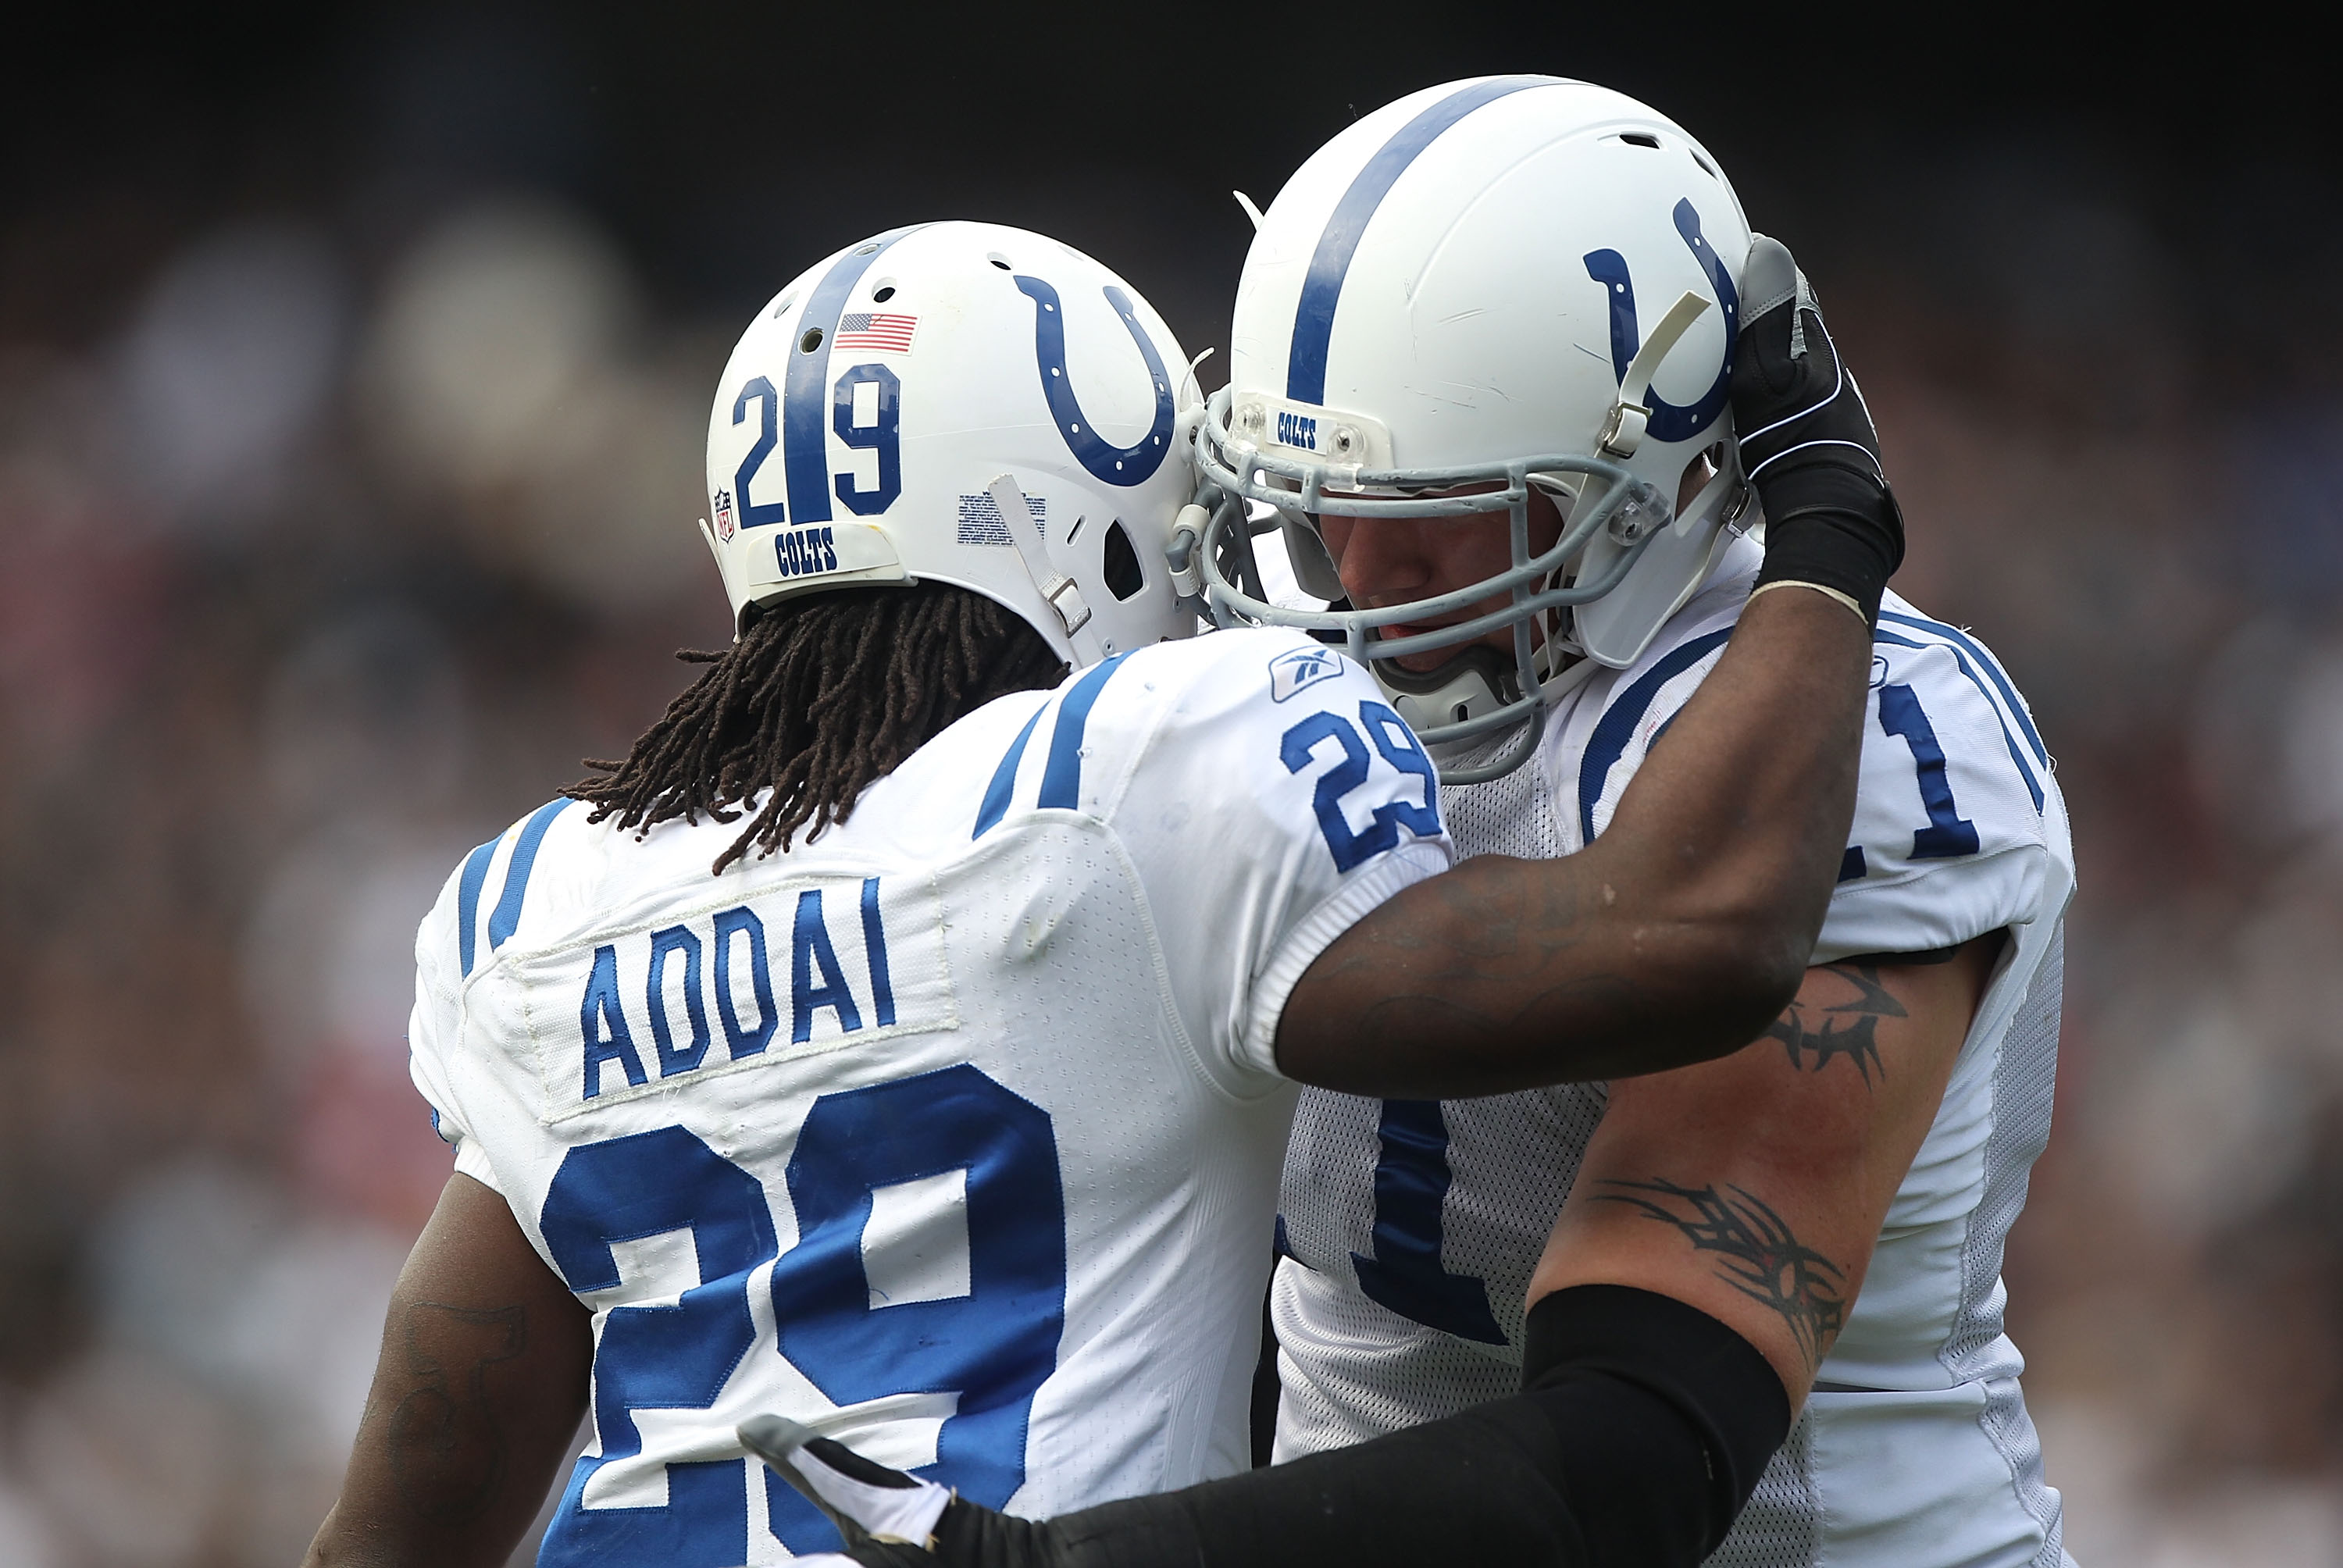 OAKLAND, CA - DECEMBER 26:  Joseph Addai #29 of the Indianapolis Colts celebrates with Jamey Richard #61 after scoring a touchdown against the Oakland Raiders during an NFL game at Oakland-Alameda County Coliseum on December  26, 2010 in Oakland, Californ